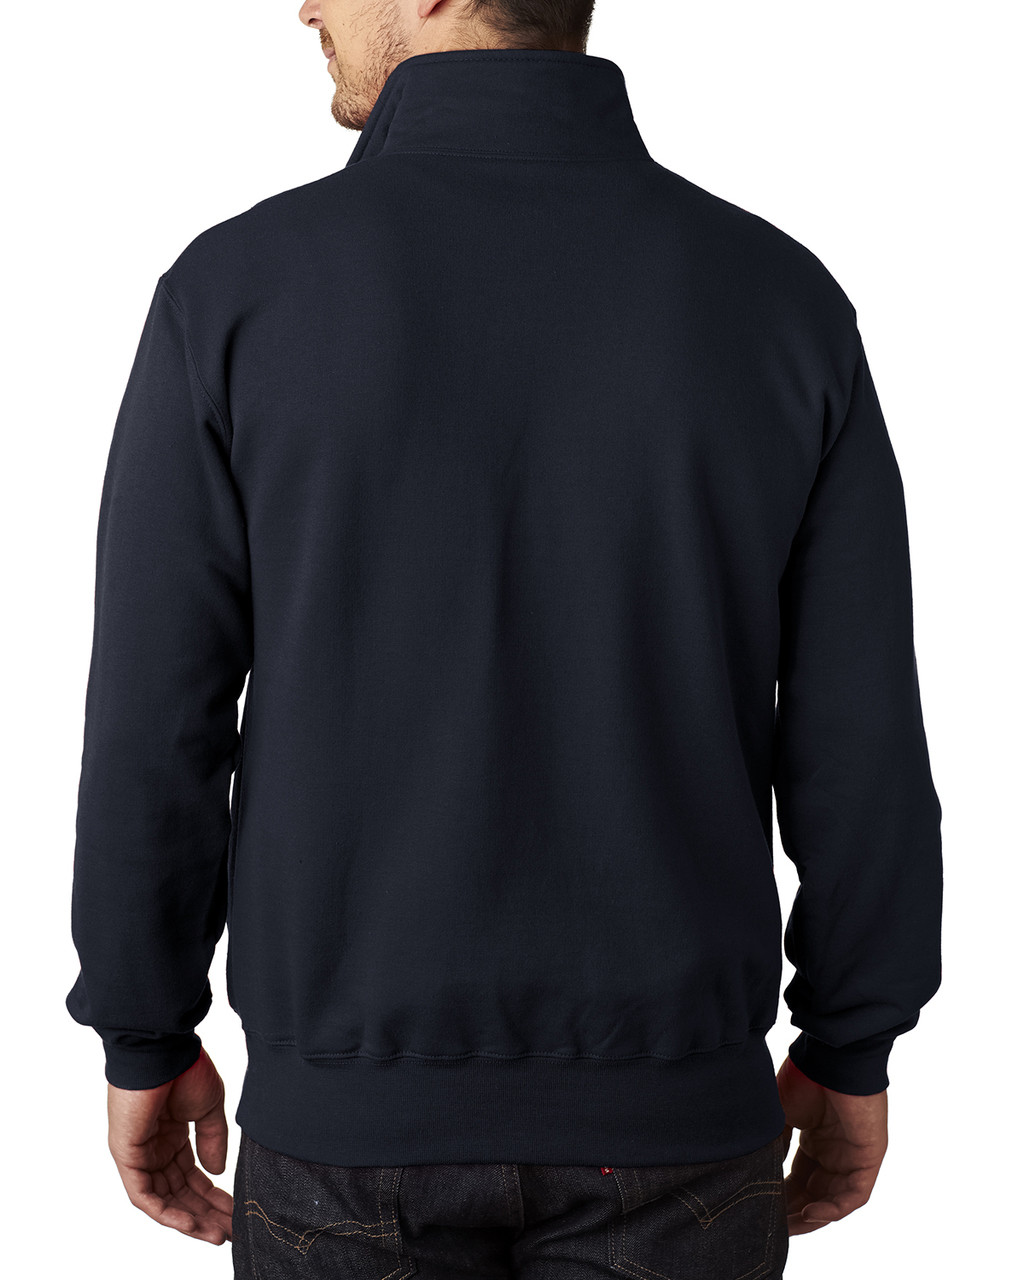 Navy, Back - S400 Champion 12 oz./lin. yd. Double Dry Eco® Quarter-Zip Pullover  | BlankClothing.ca